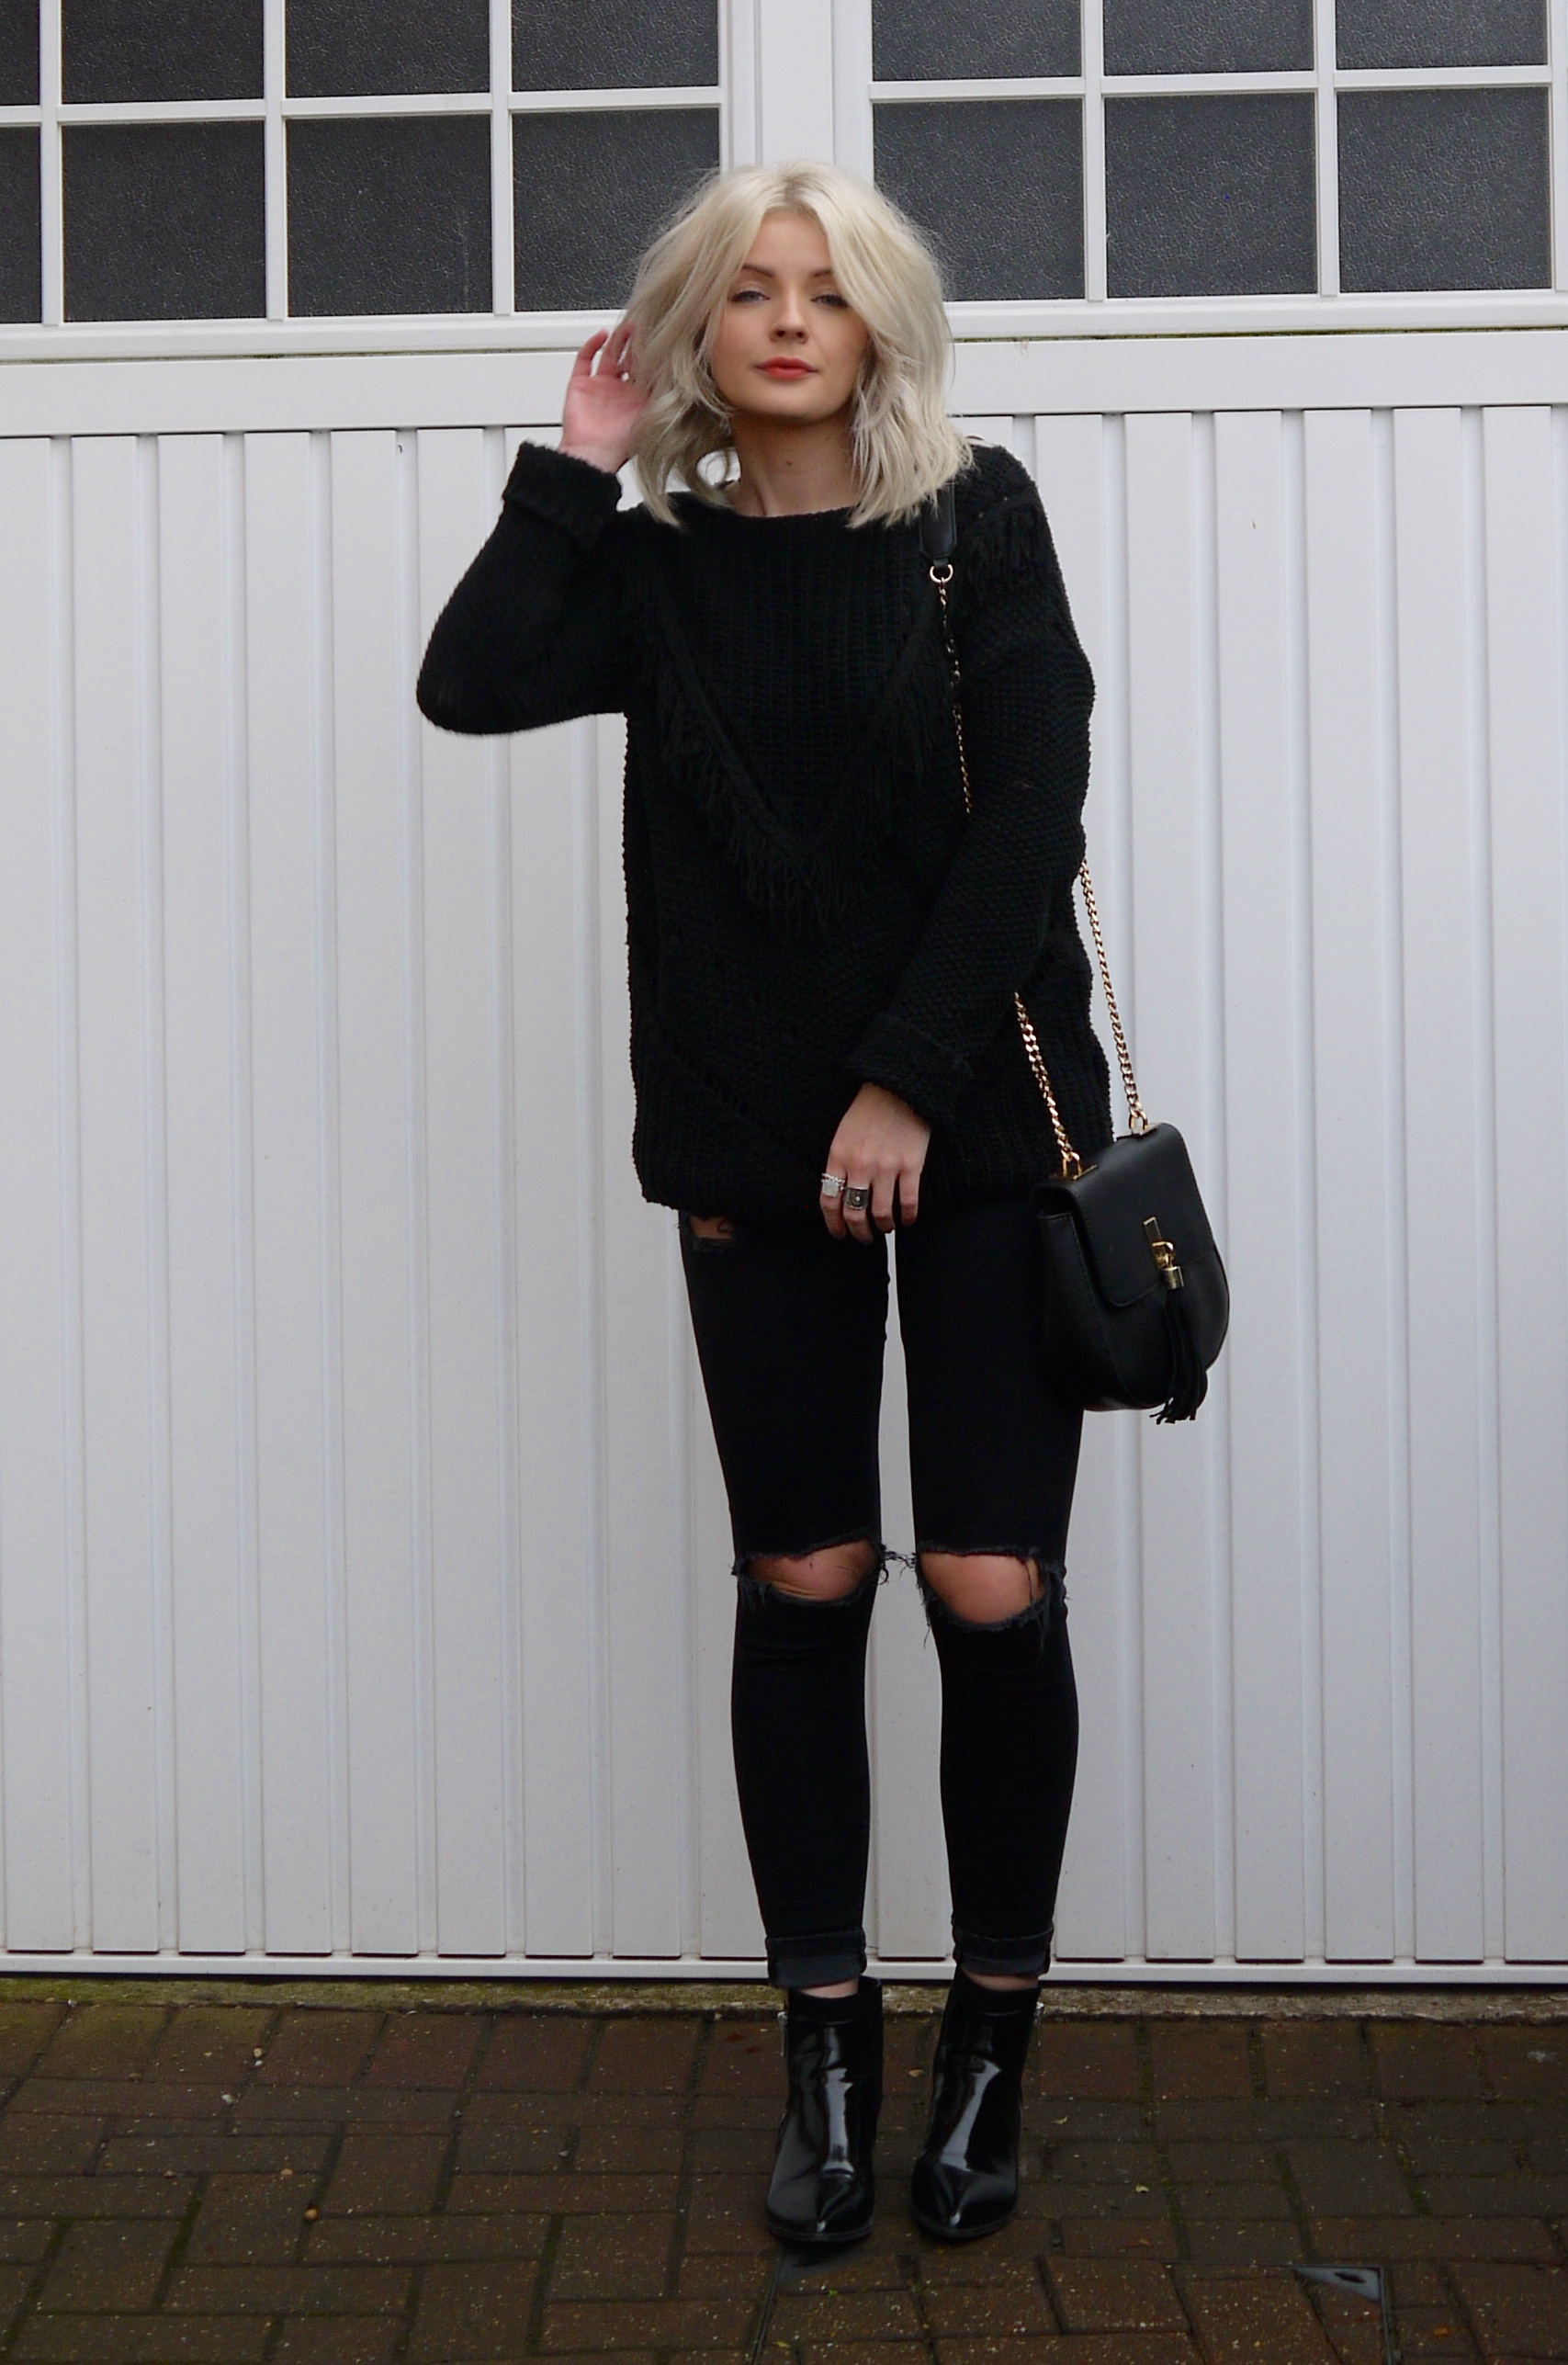 all black outfit, black jeans, black ankle boots, black chloe dupe bag, blonde wavy hair, laura byrnes, lauras little locket